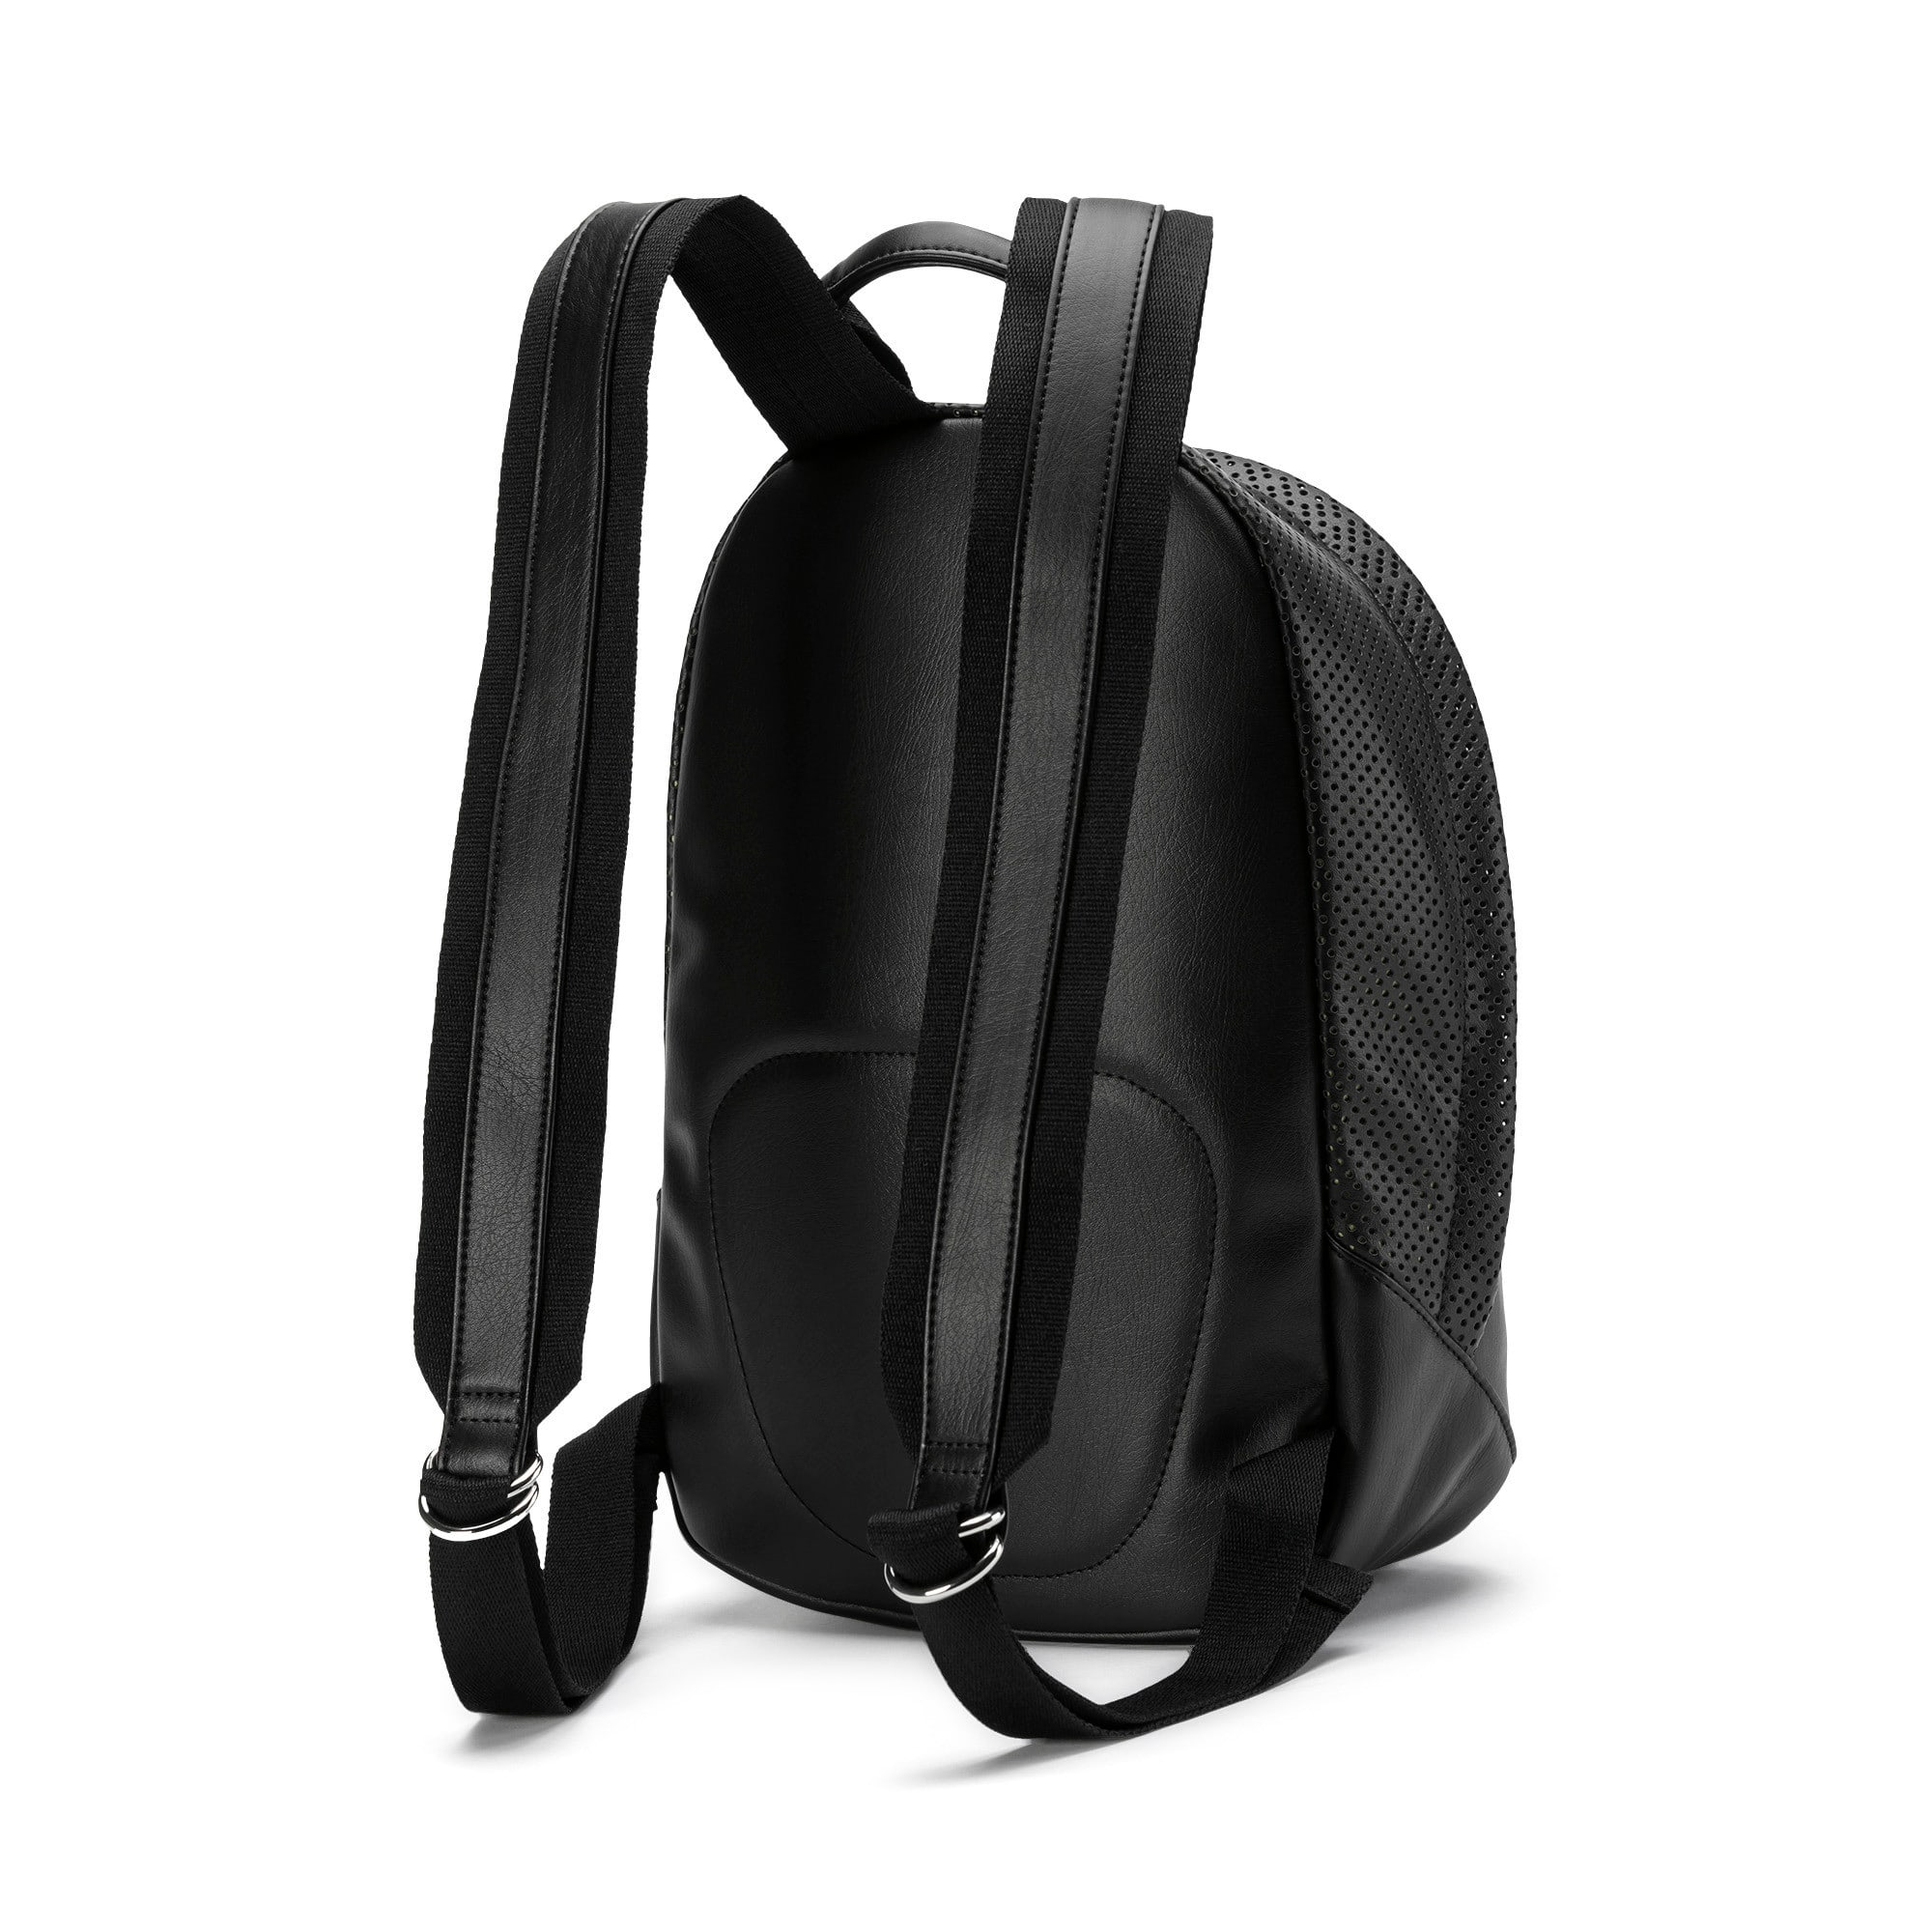 Thumbnail 3 of SG x PUMA Style Backpack, Puma Black, medium